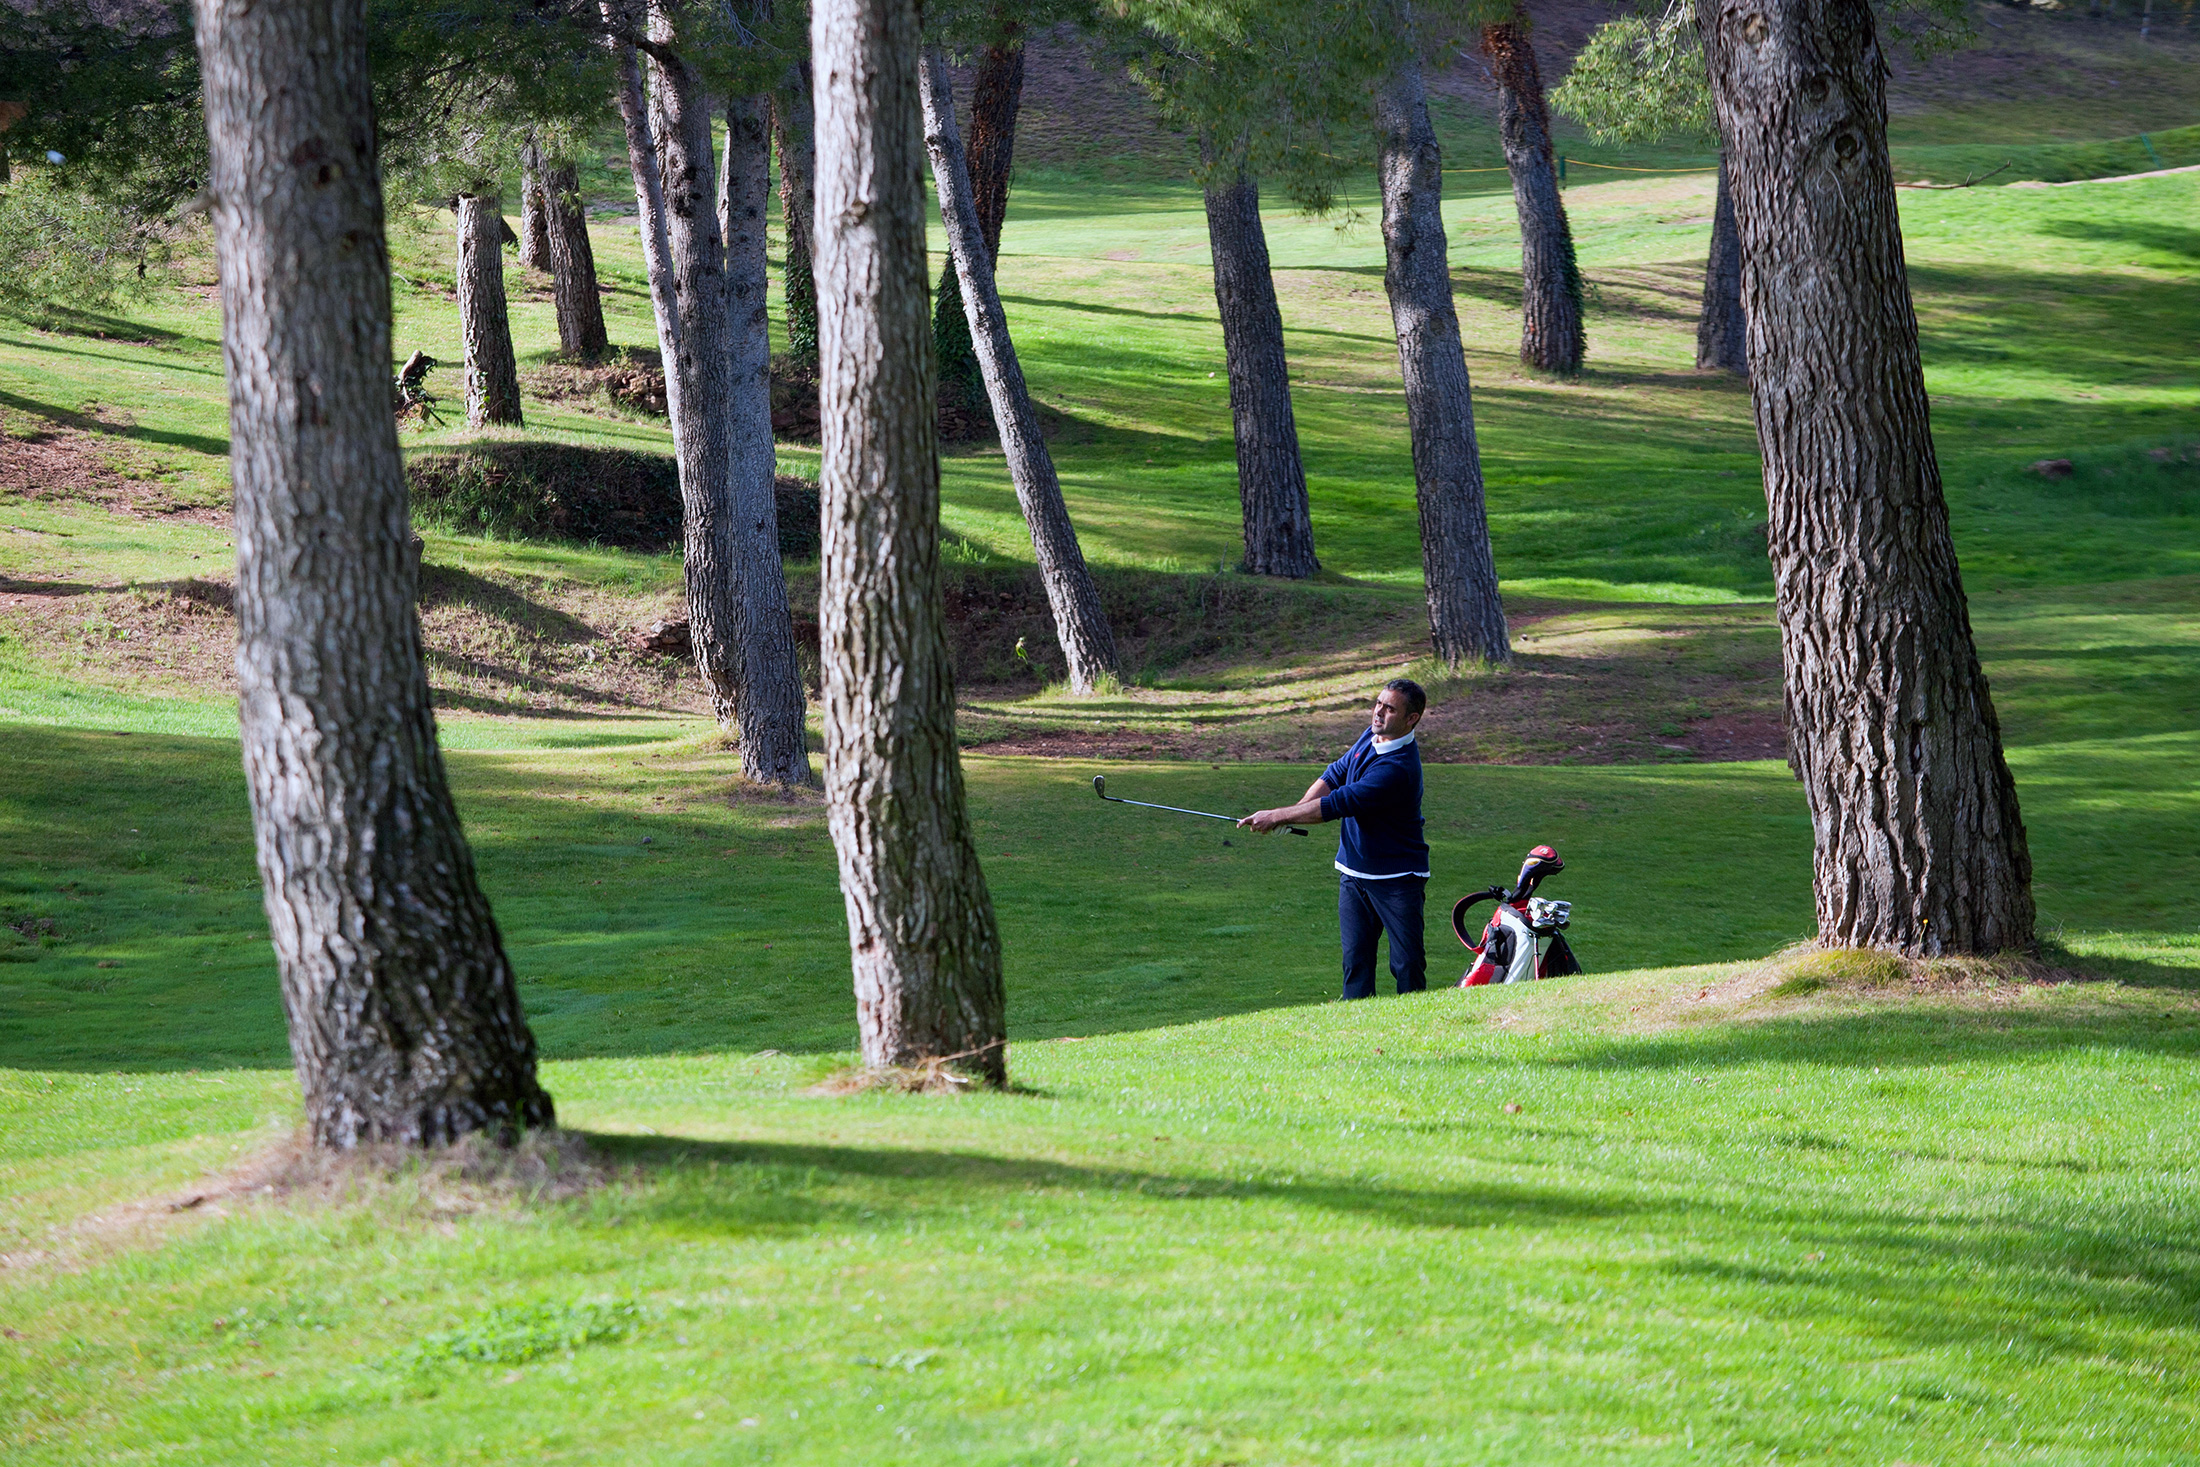 Camp de golf municipal de Matadepera